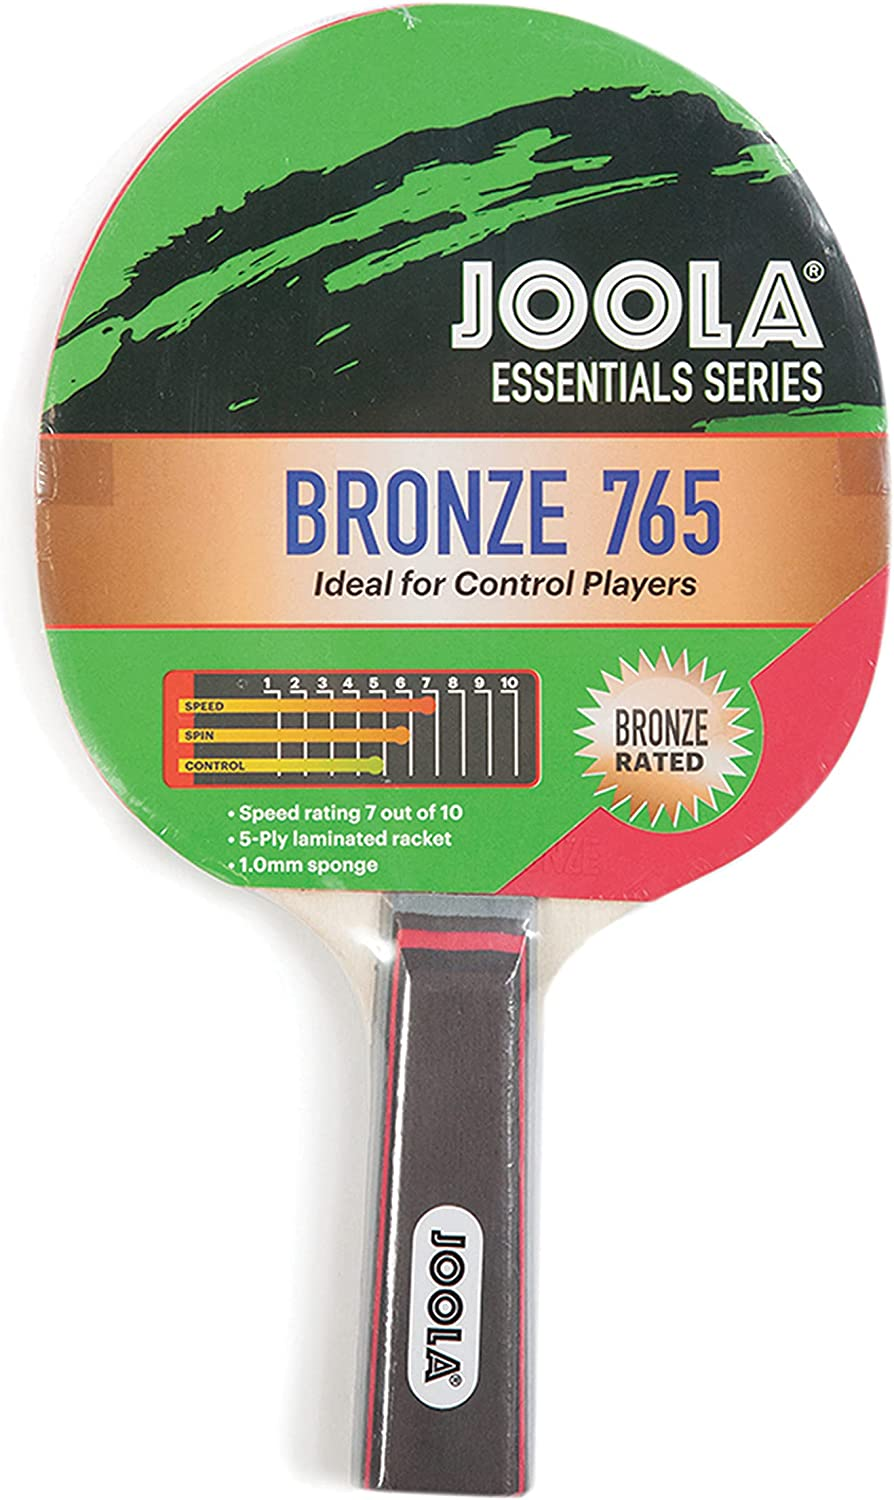 JOOLA Essentials Bronze 765 Ping Award-winning store Pong Paddle Table New Shipping Free Shipping Entry Level -